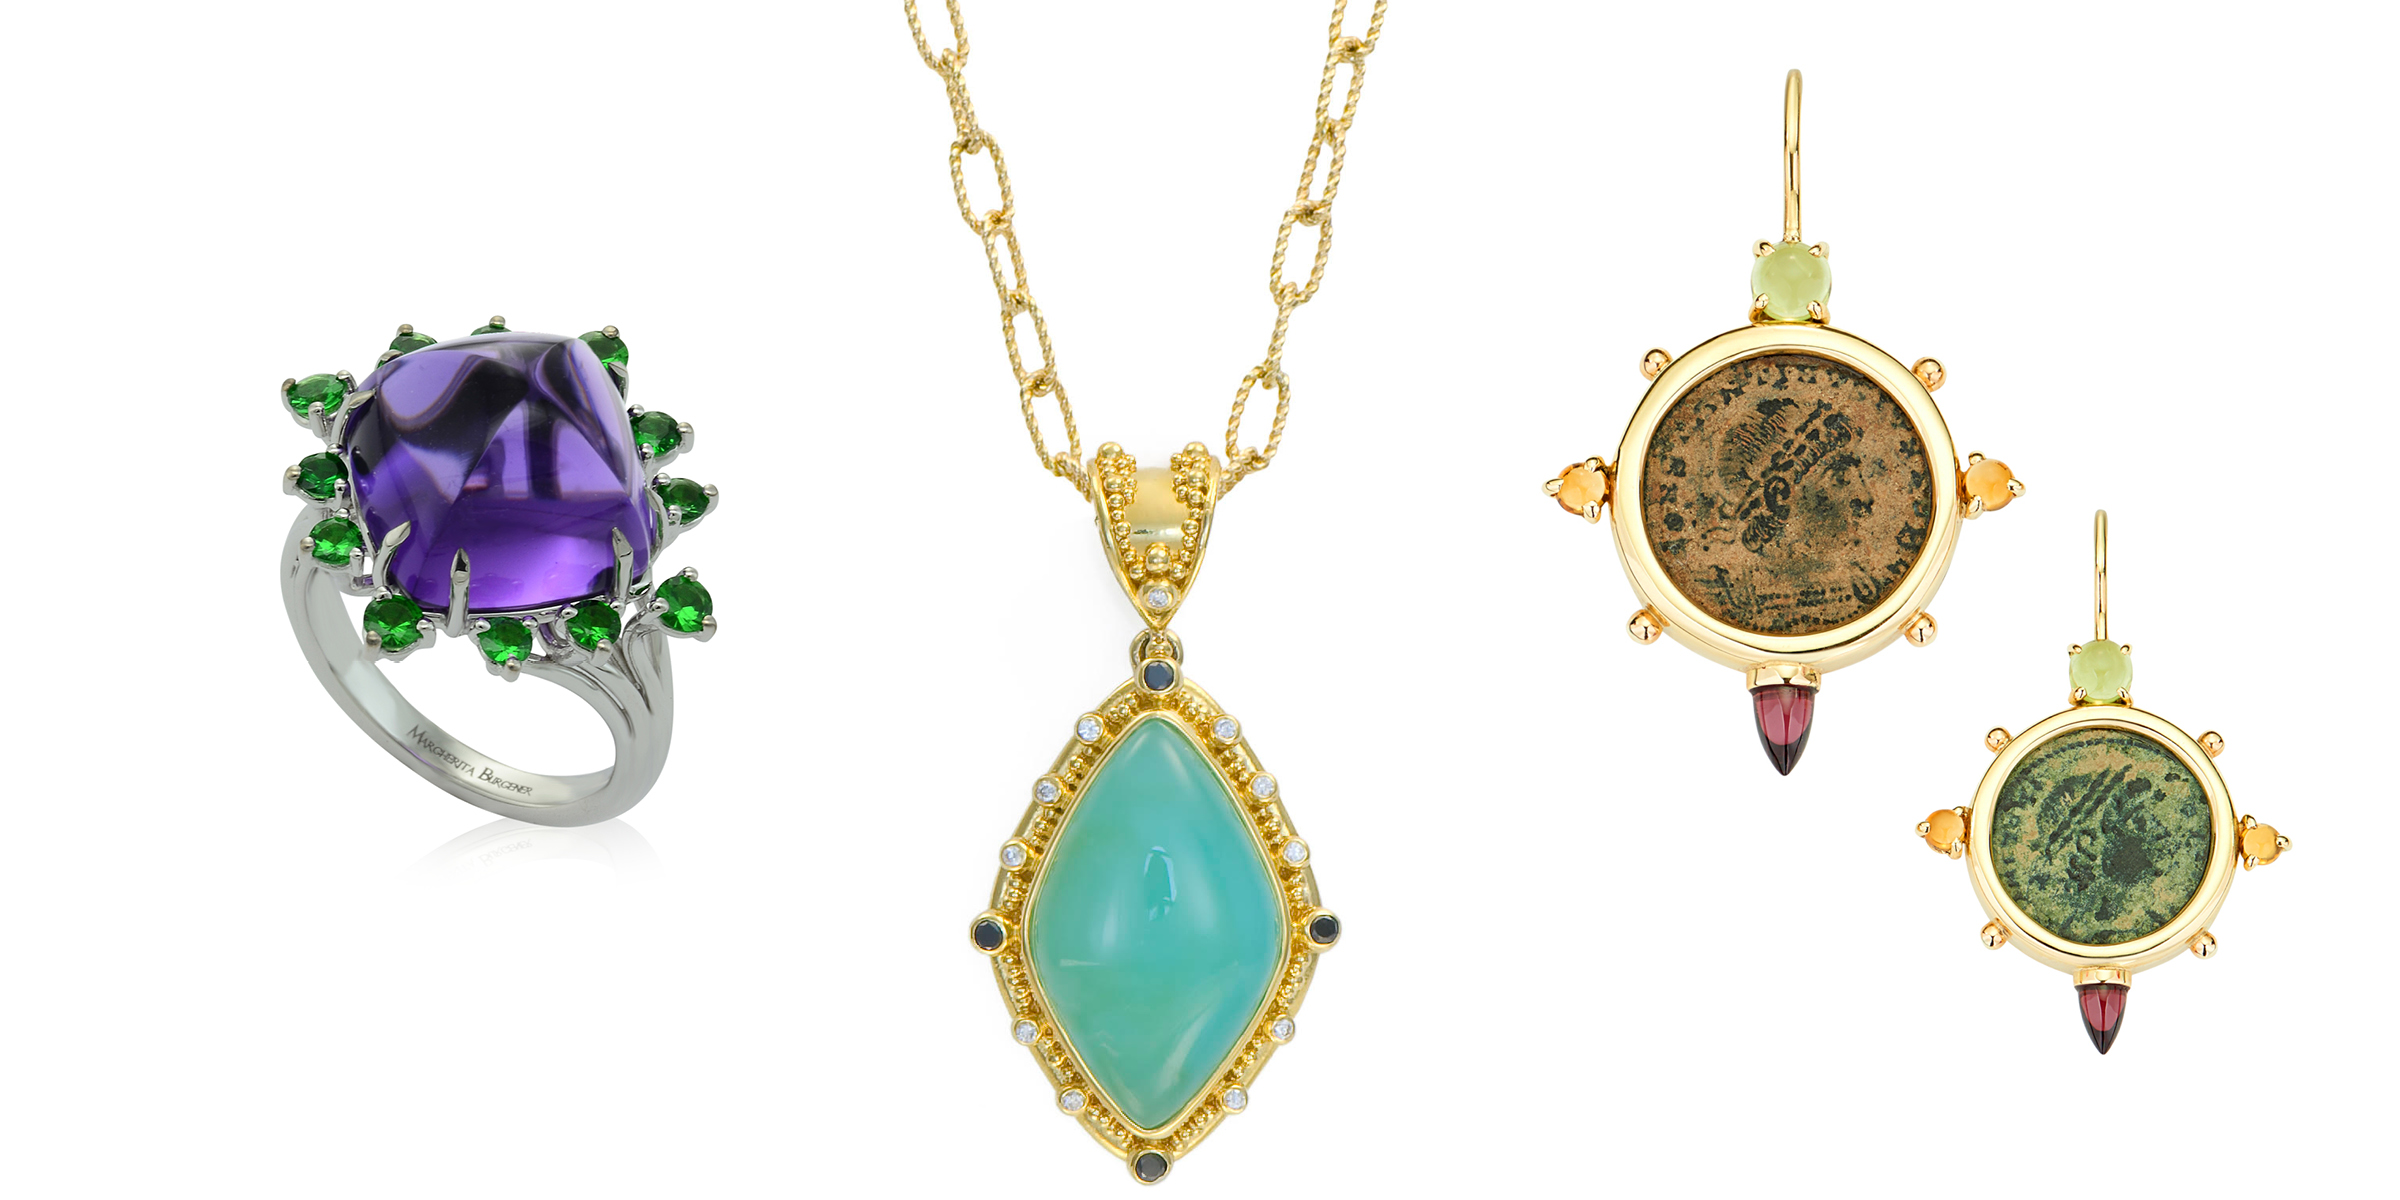 Meet the Cabochon - A curation of jewelry set with gemstones that are shaped or polished, rather than faceted